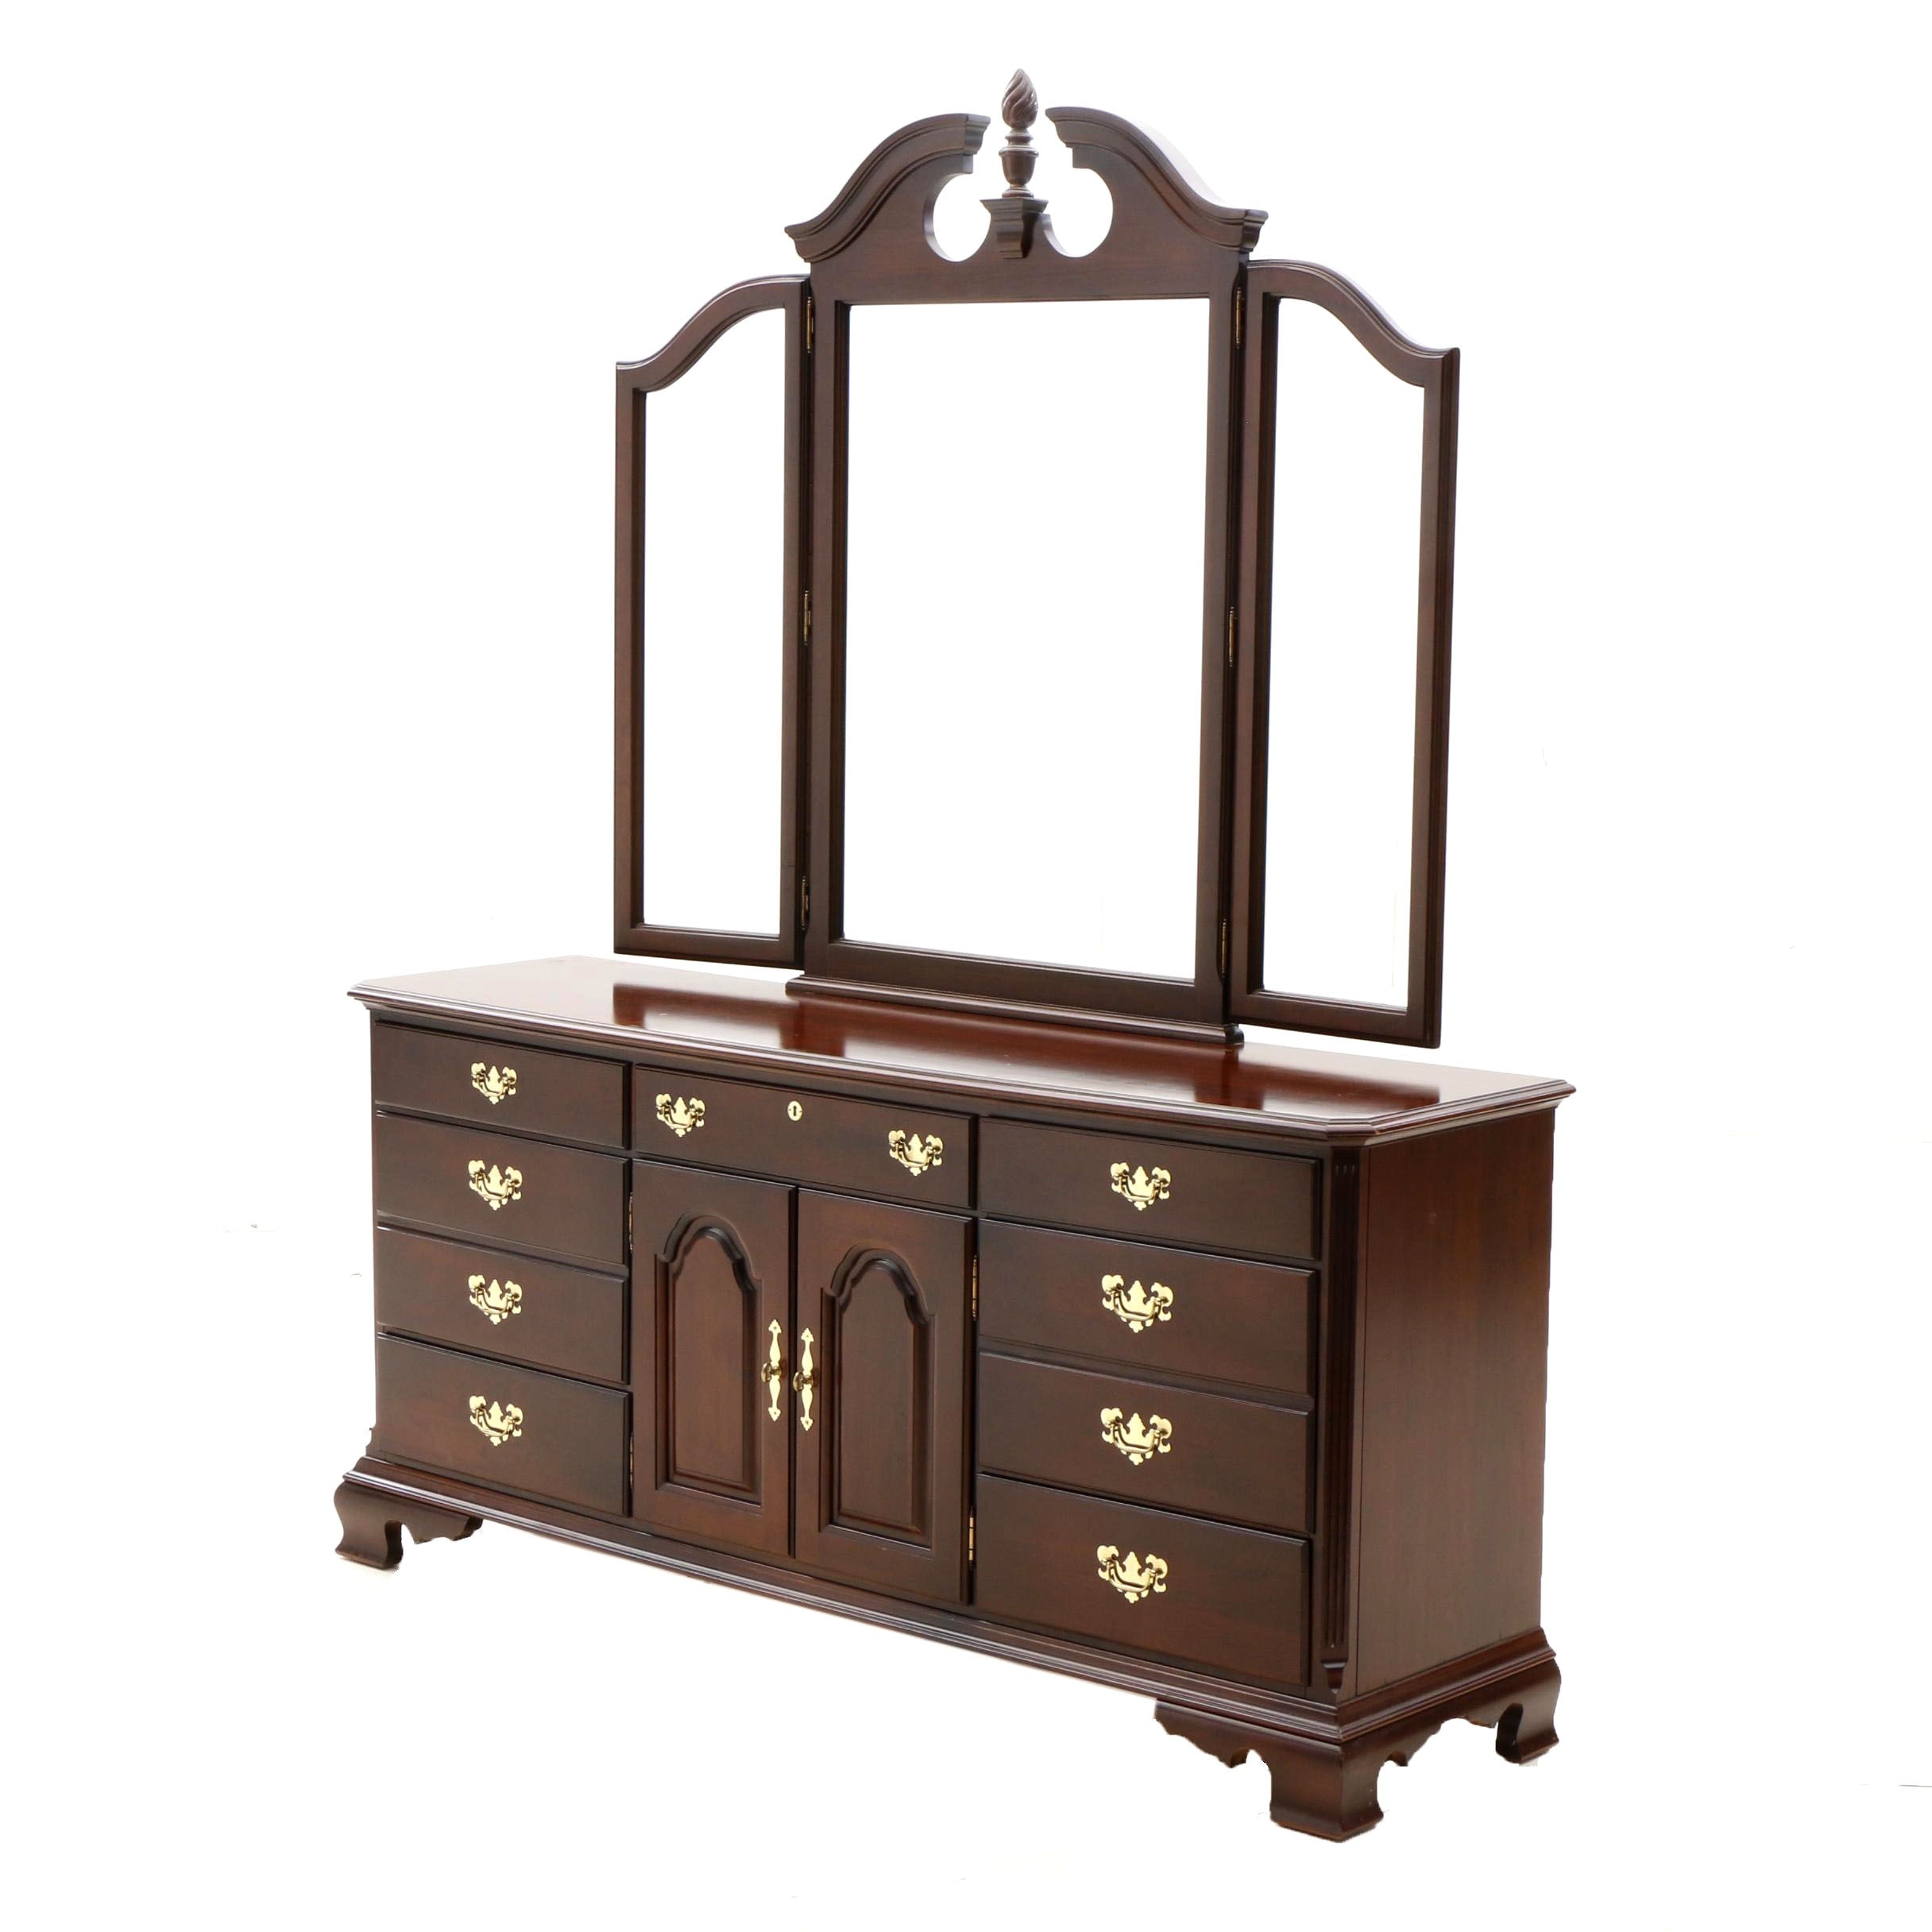 Federal Style Chest of Drawer with Mirror in Cherry by Kincaid